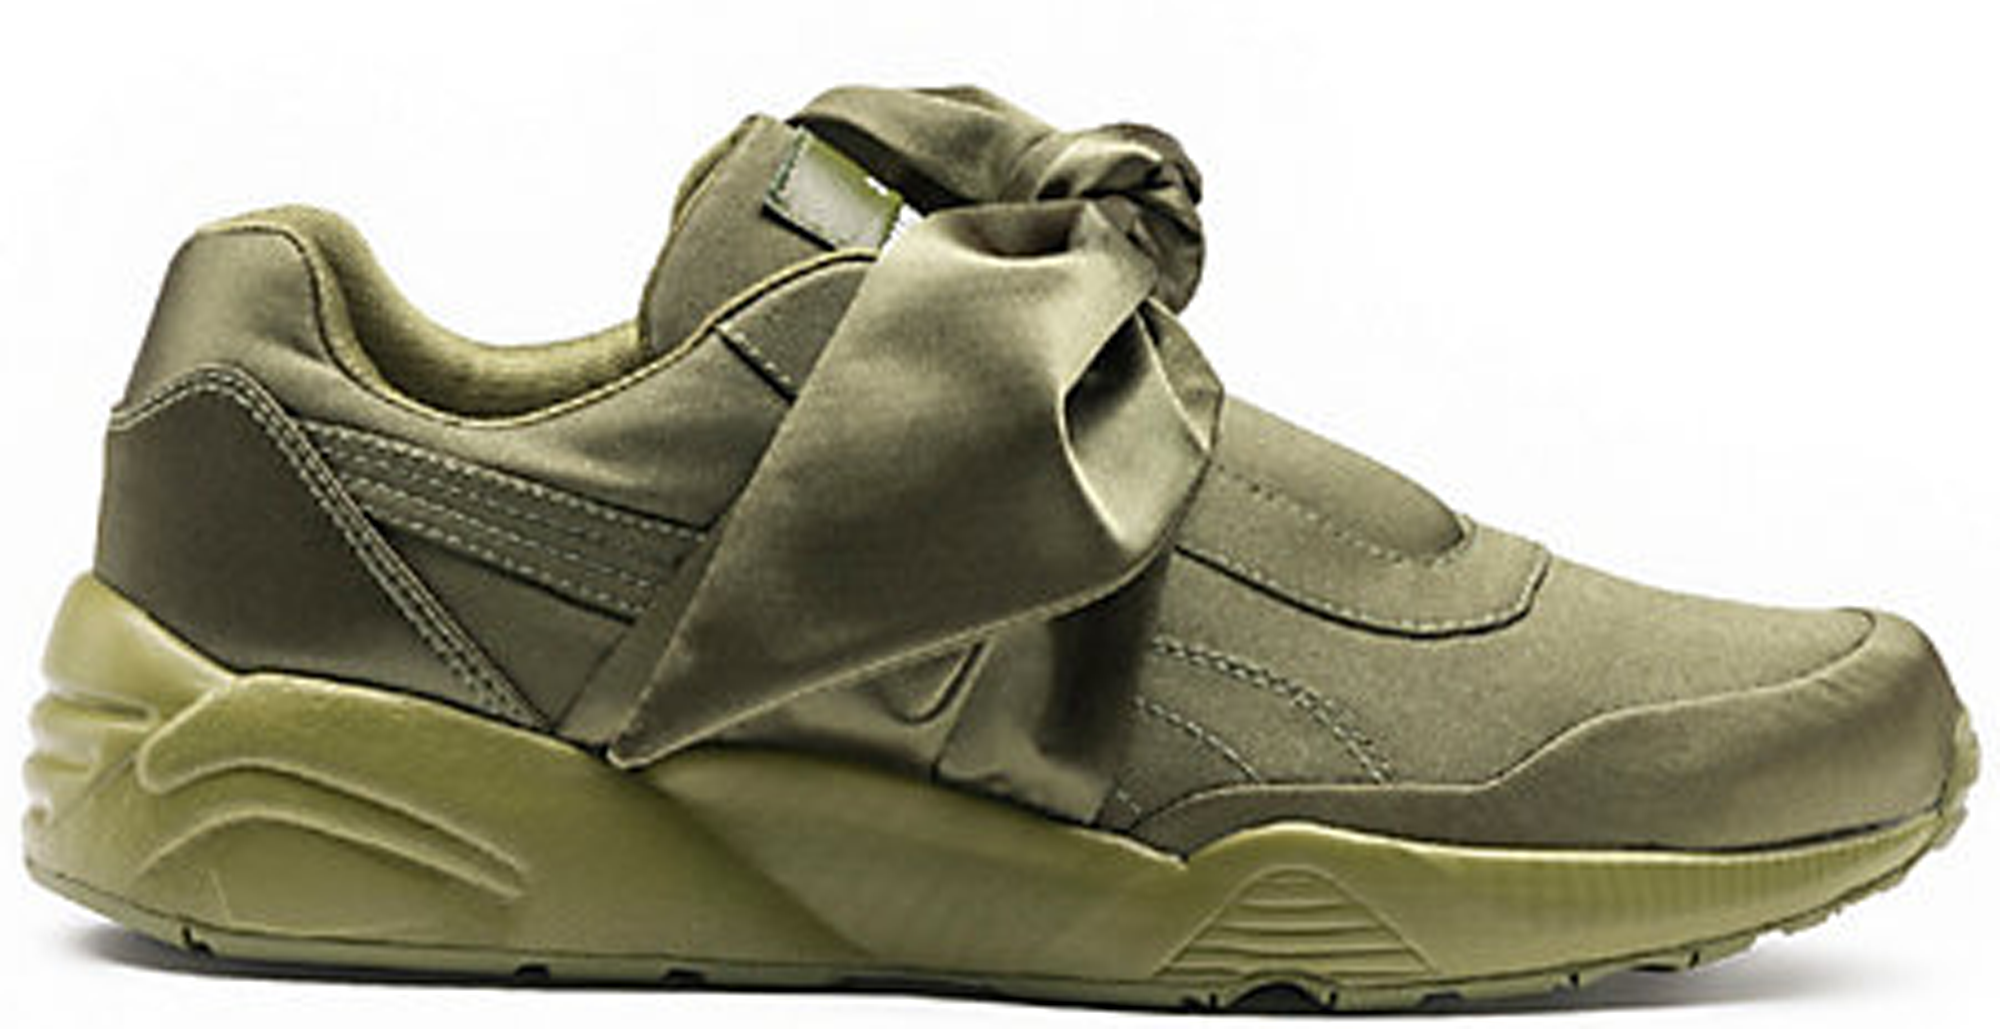 puma fenty bow sneakers olive